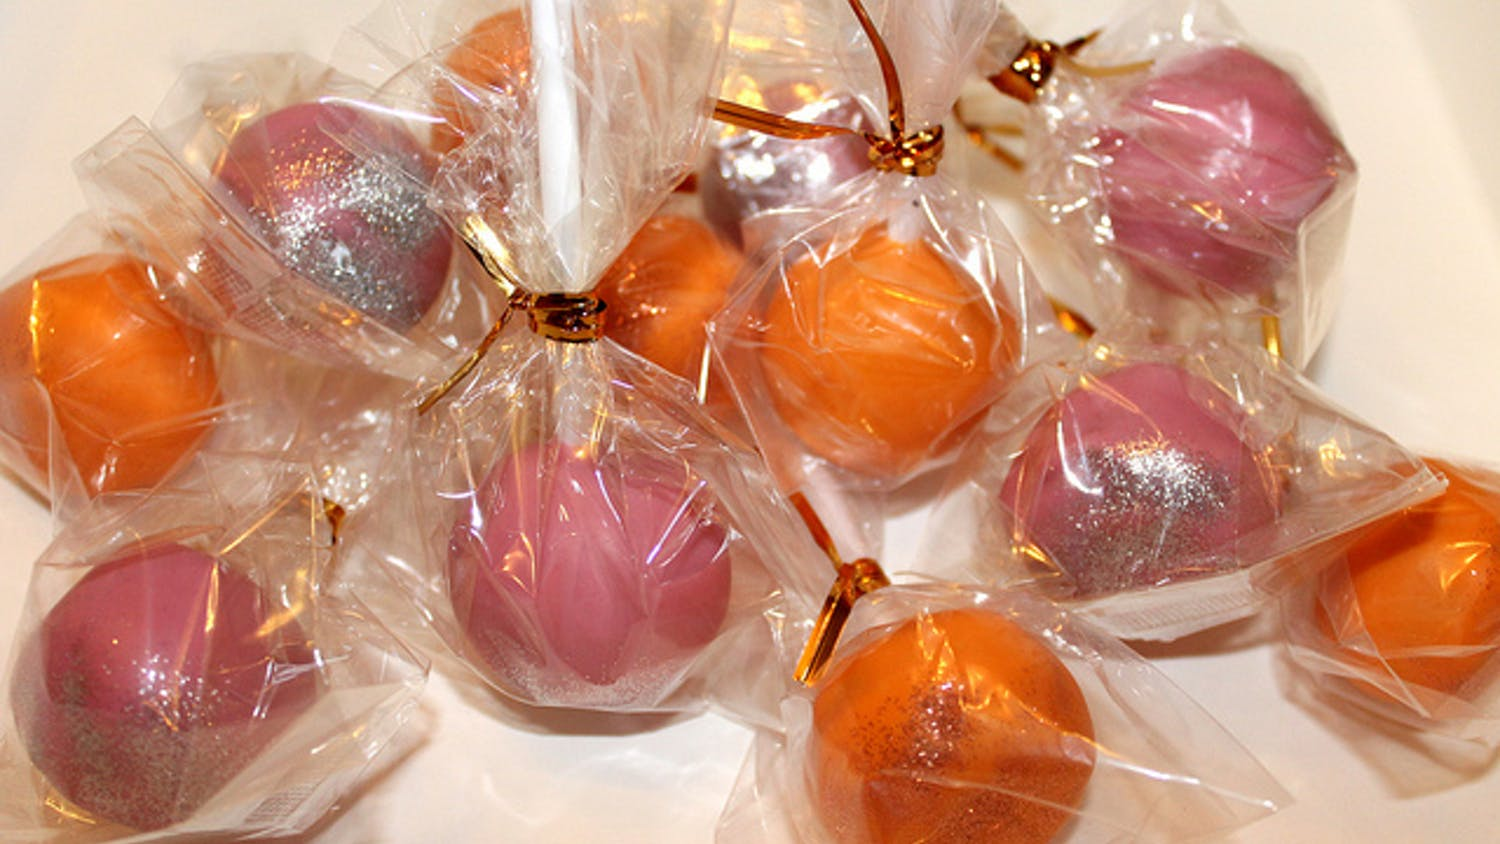 """Cake pops for Tola's birthday 23 Feb '12"" by Ayca Wilson, used under CC BY 2.0"